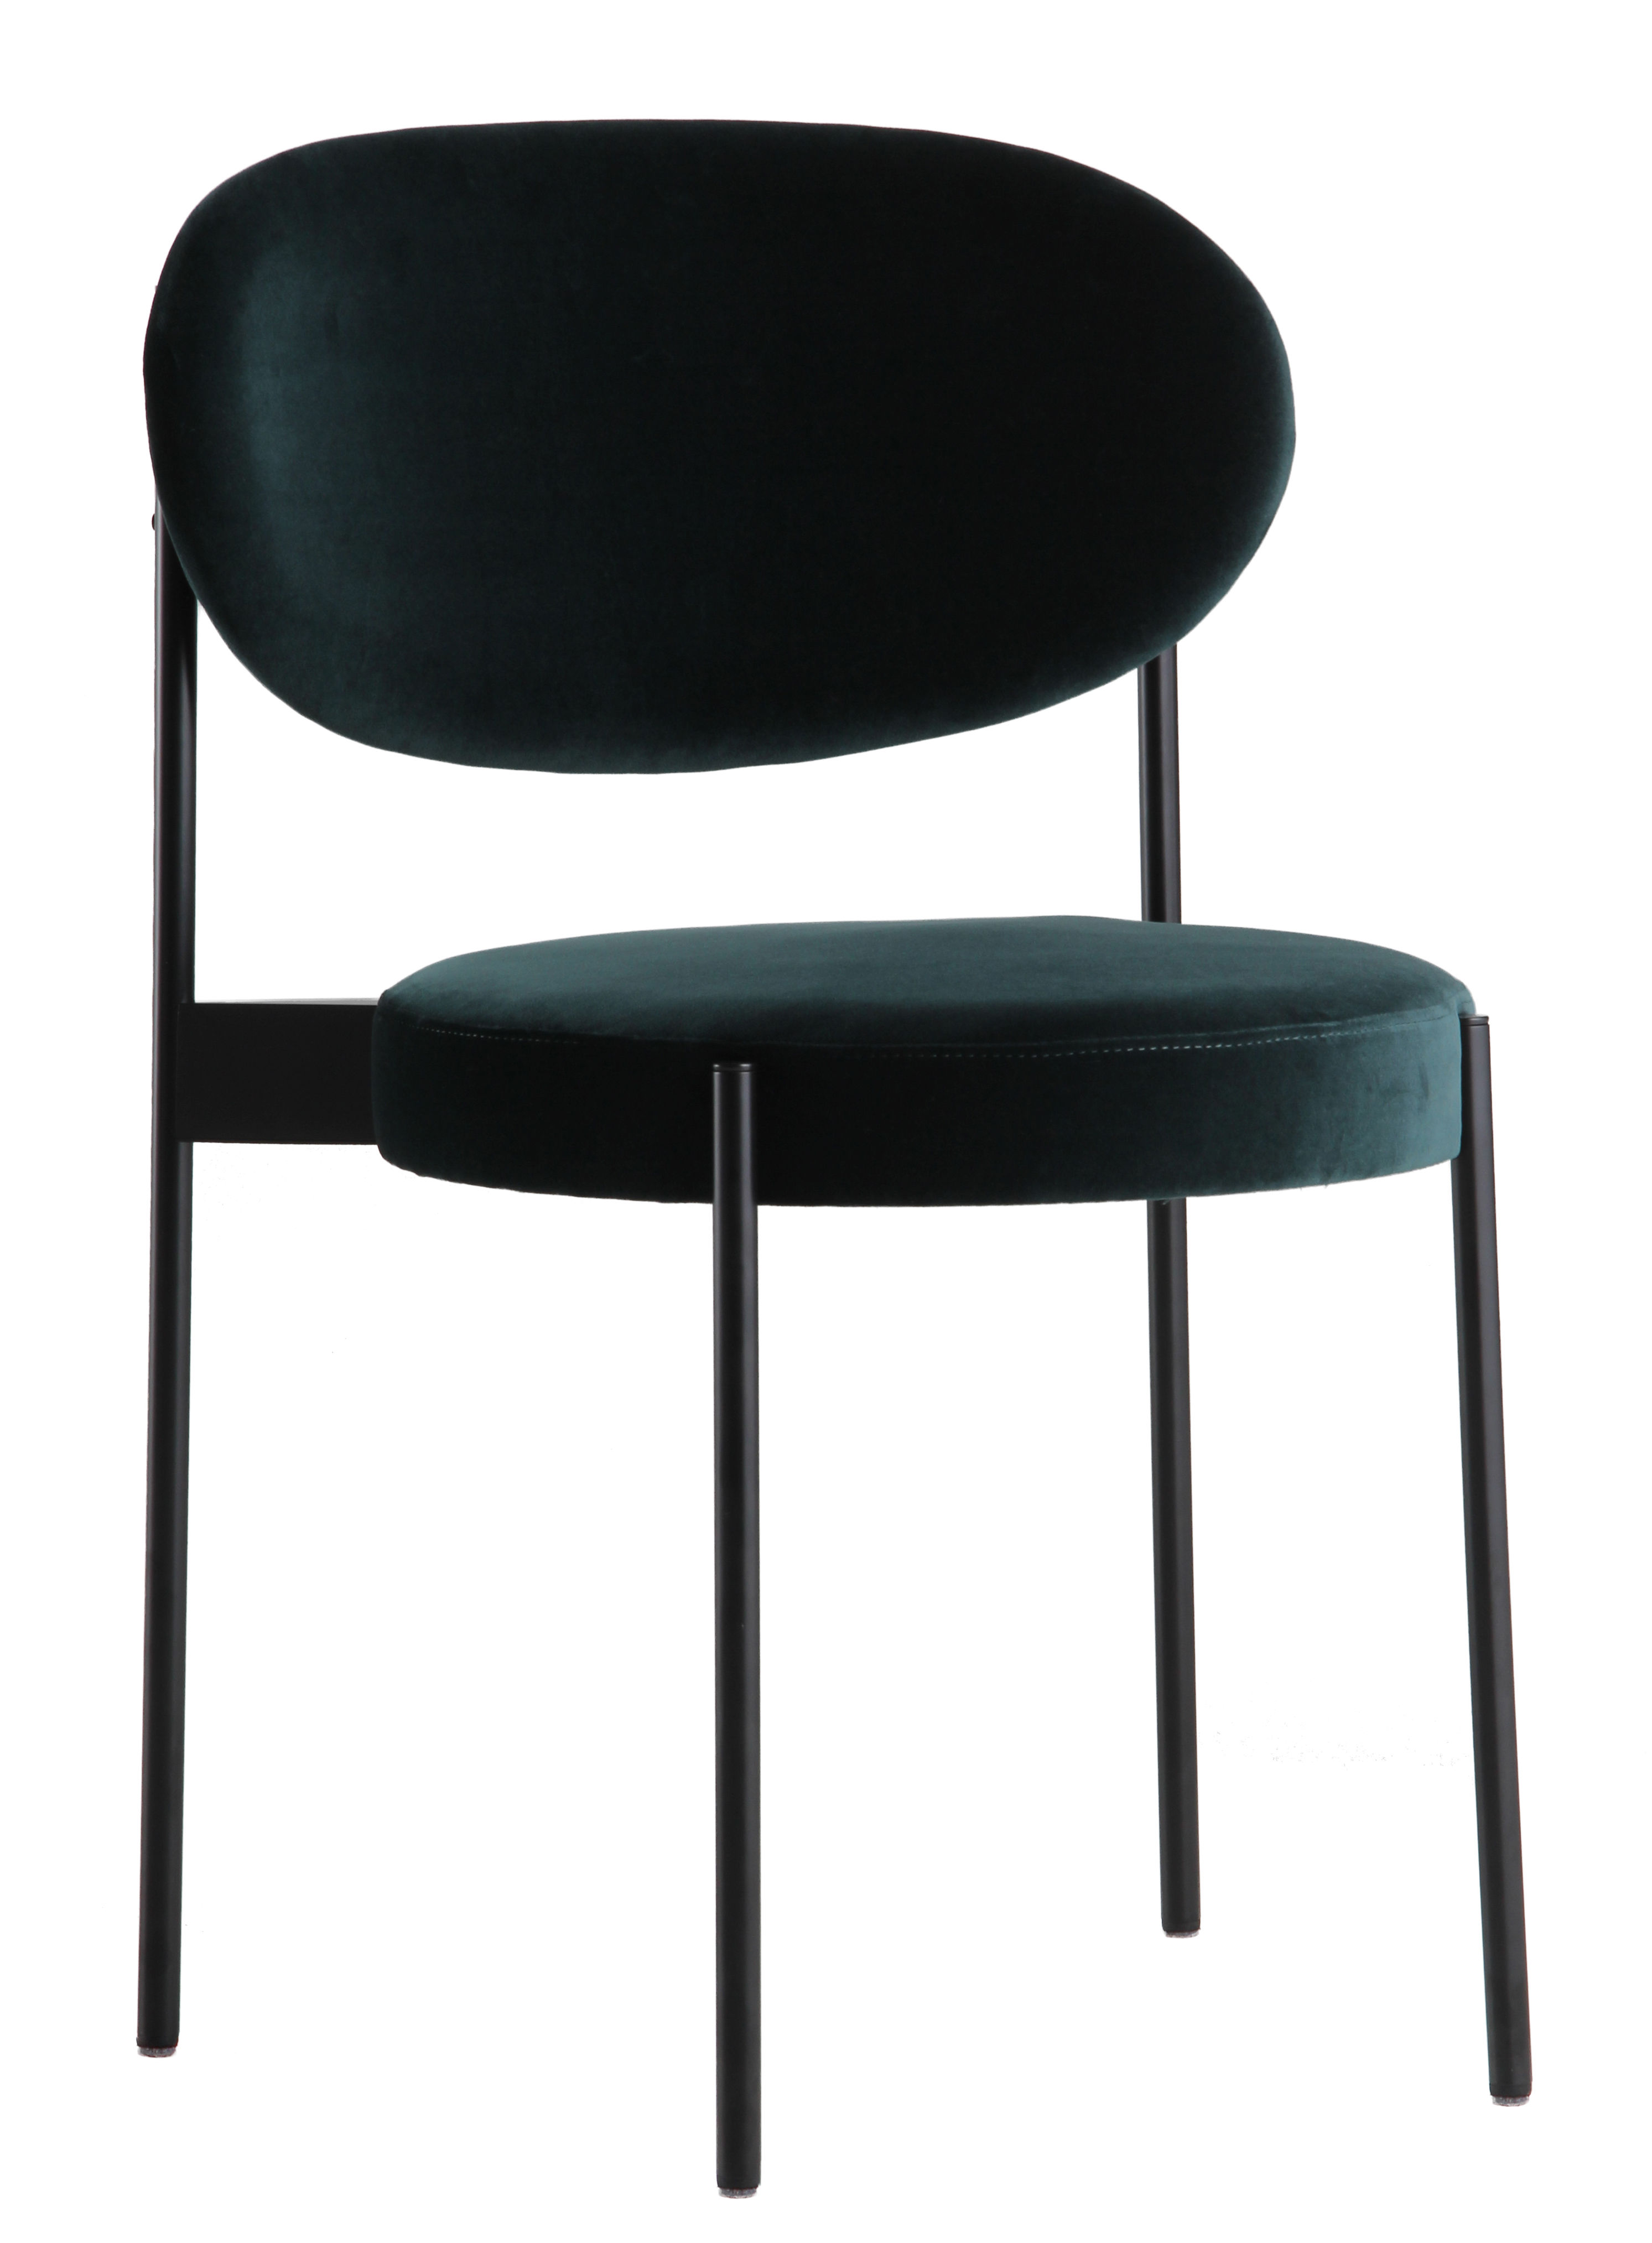 Furniture - Chairs - Series 430 Padded chair - Stackable - Fabric & Metal by Verpan - Bottle green - Foam, Stainless steel, Velvet